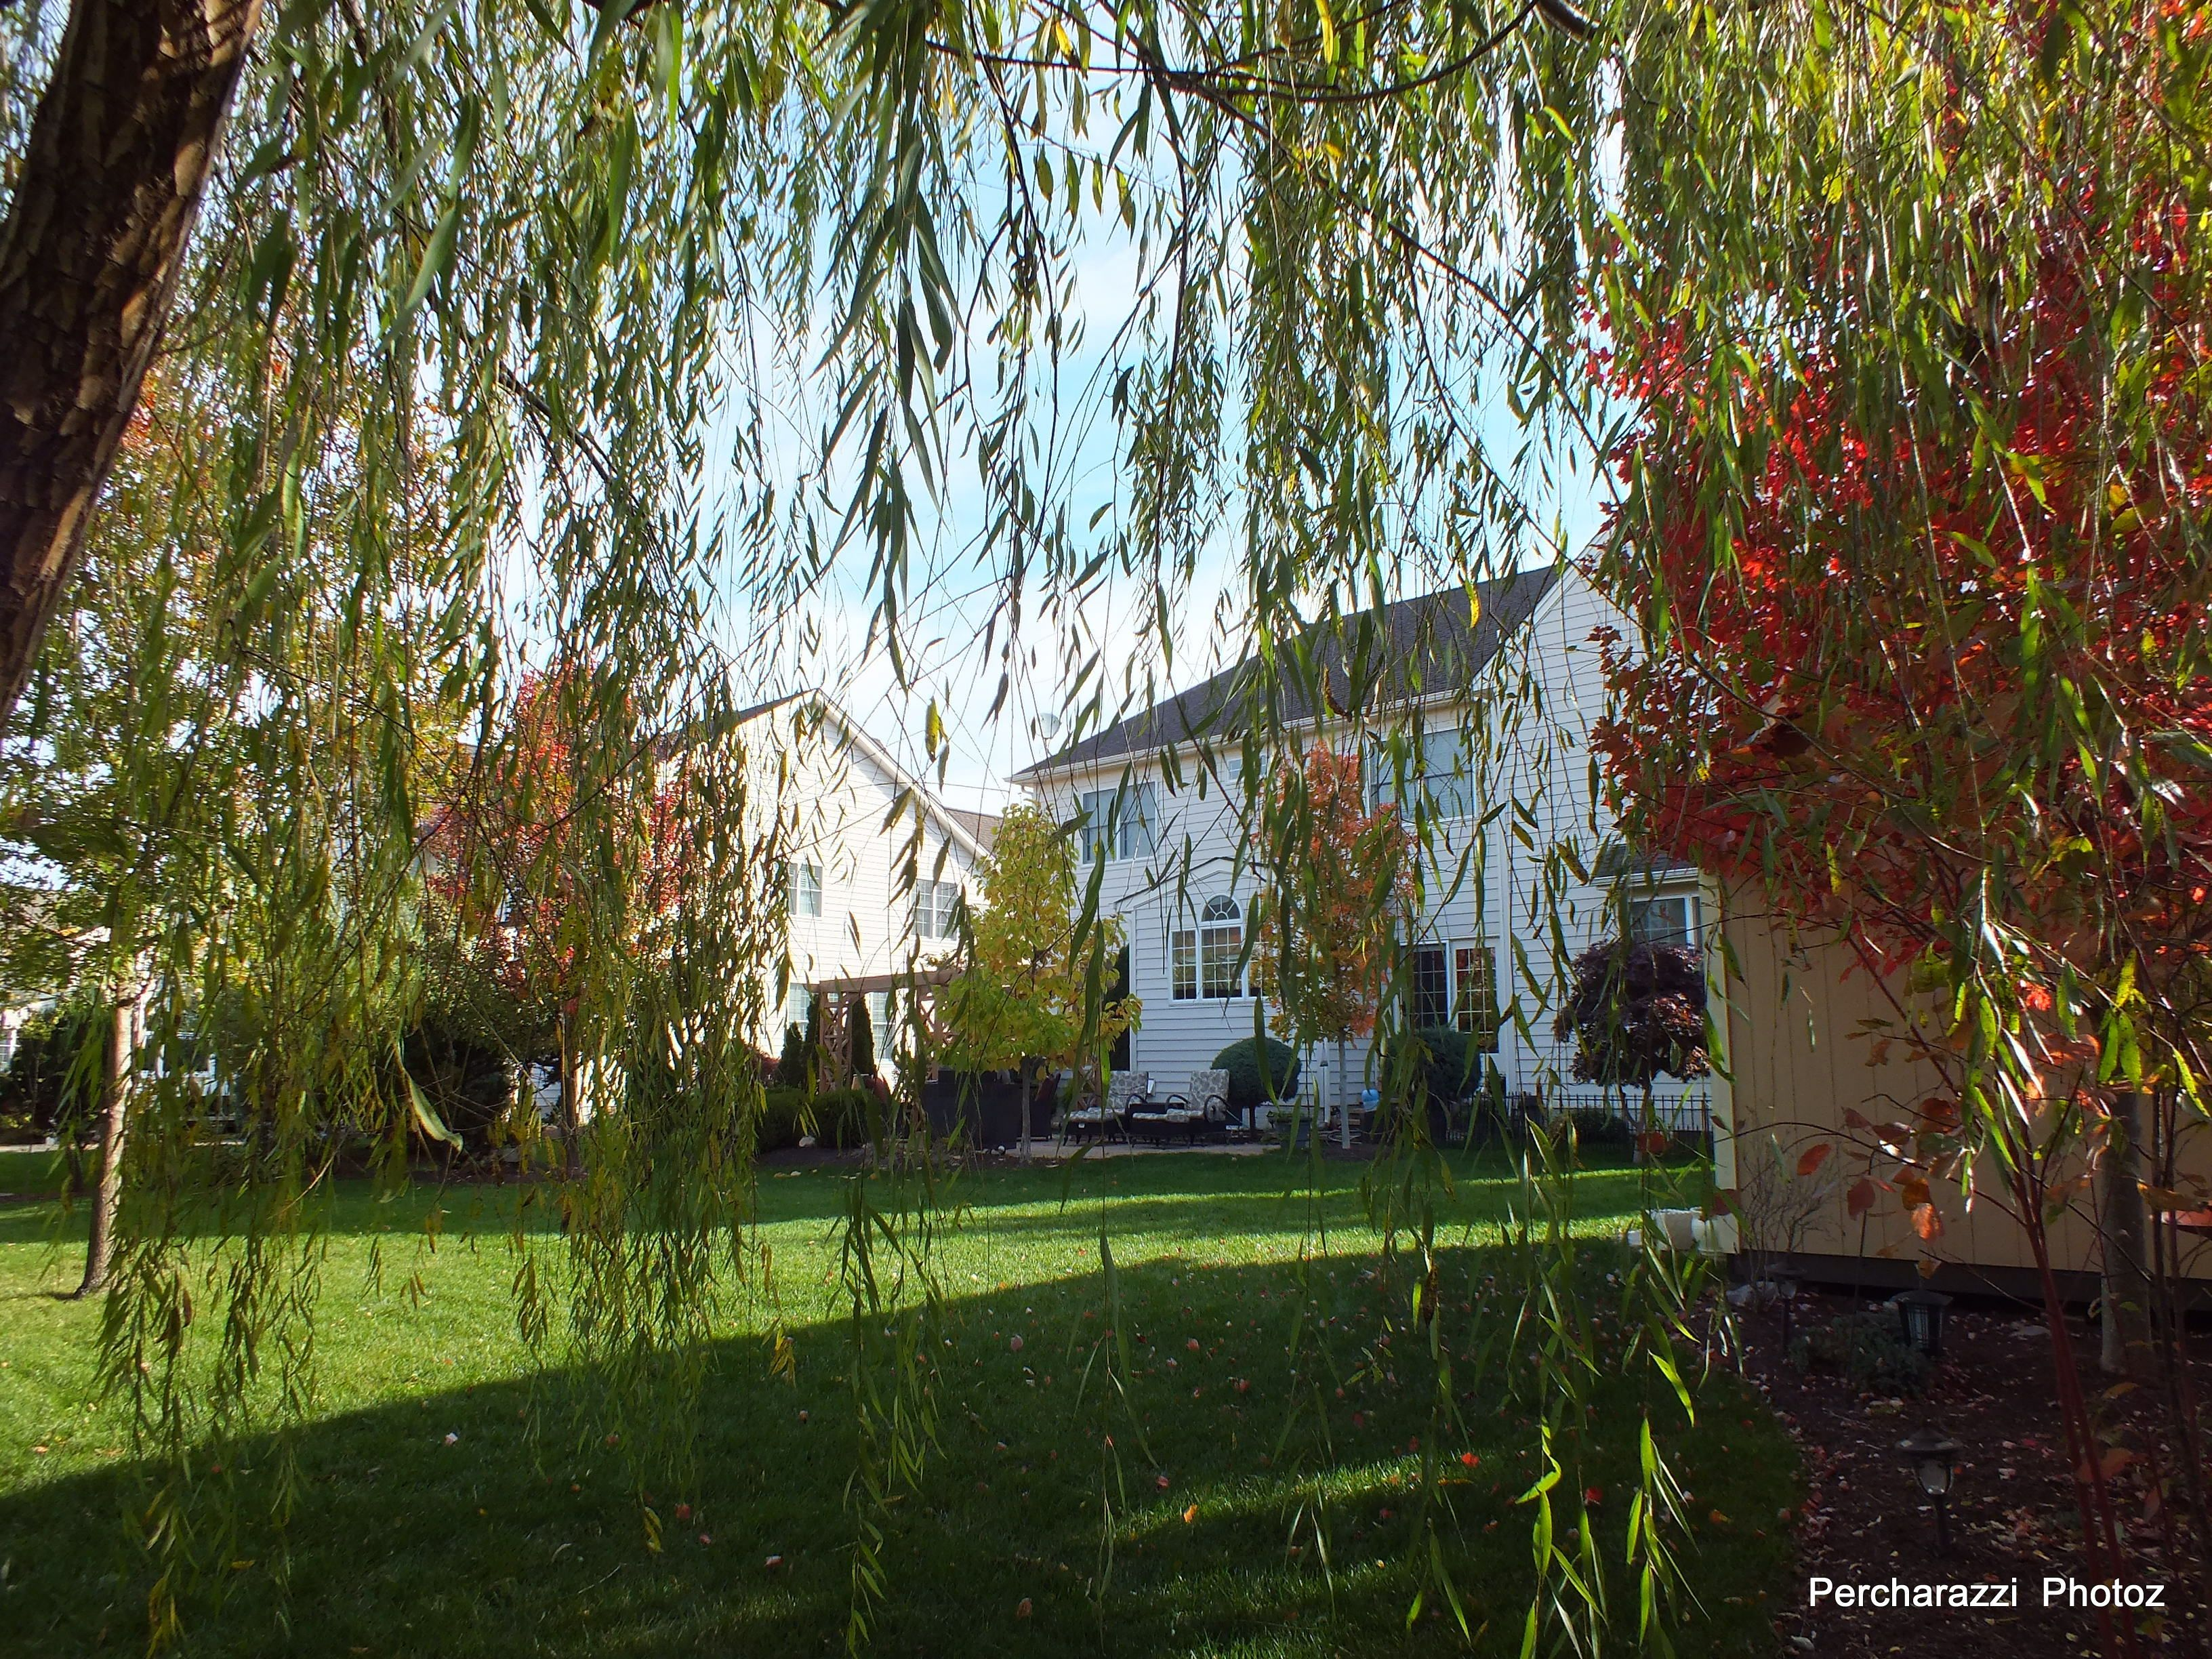 Willow Tree in back yard